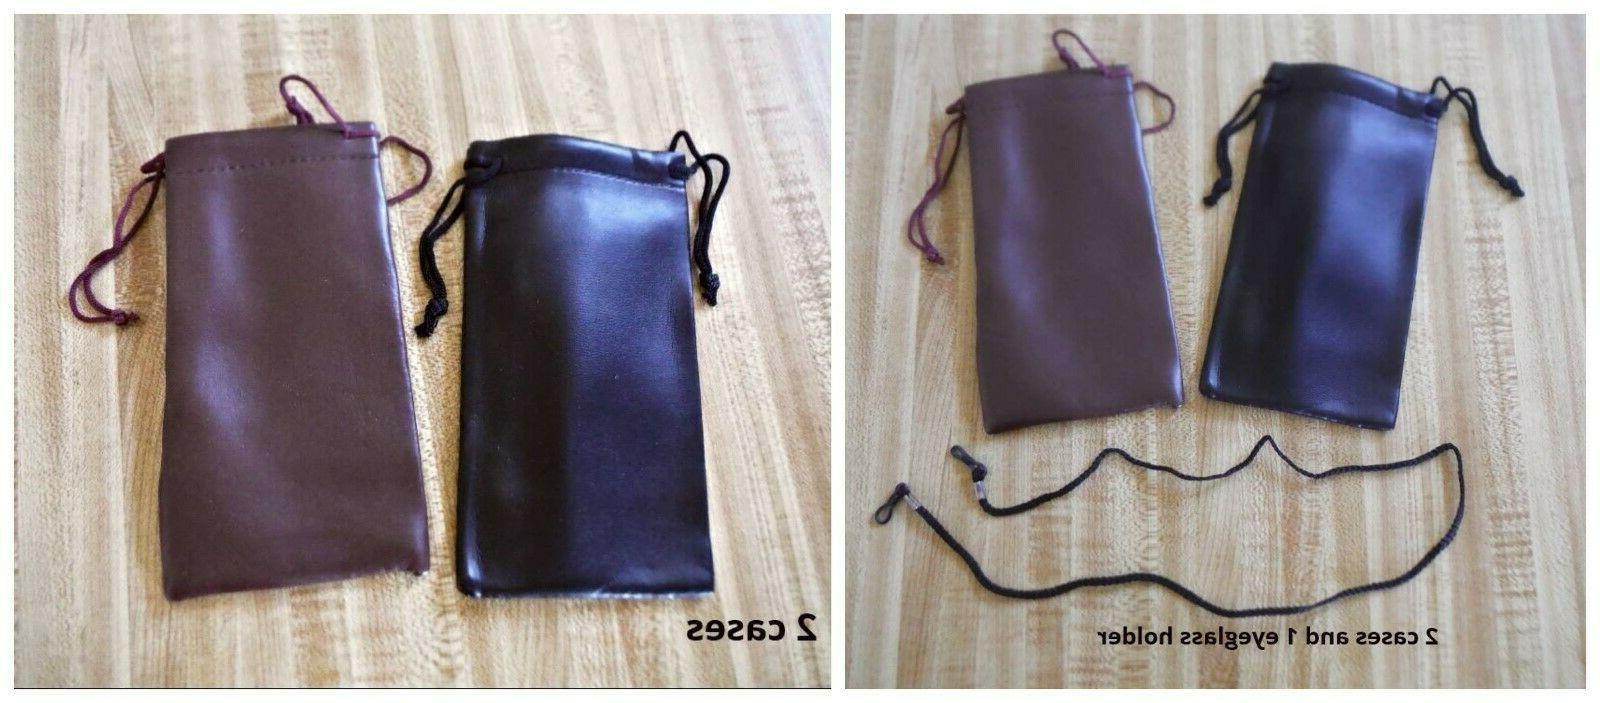 2 soft case pouch bag holders 2